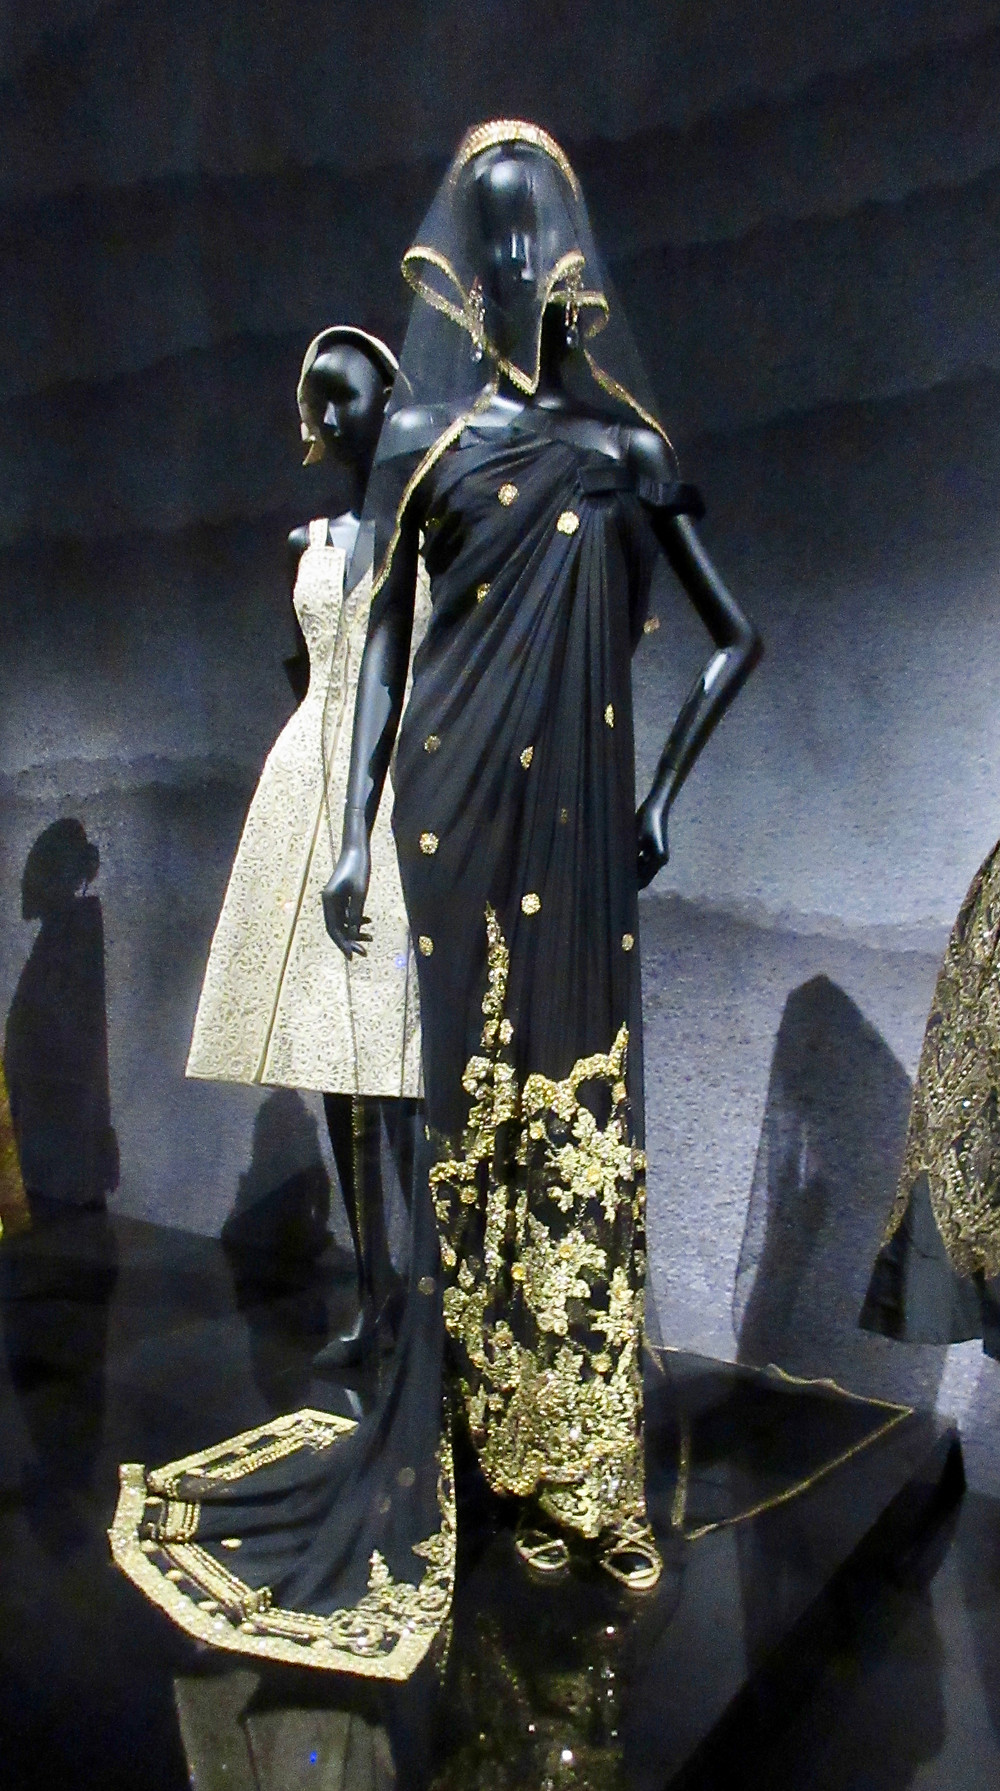 Indian Influence - Shalimar Dress by Gianfranco Ferrere Haute Couture Autumn/Winter 1996. Silk Chiffon, metal thread lace, sequins, beads and Swarovski crystals.